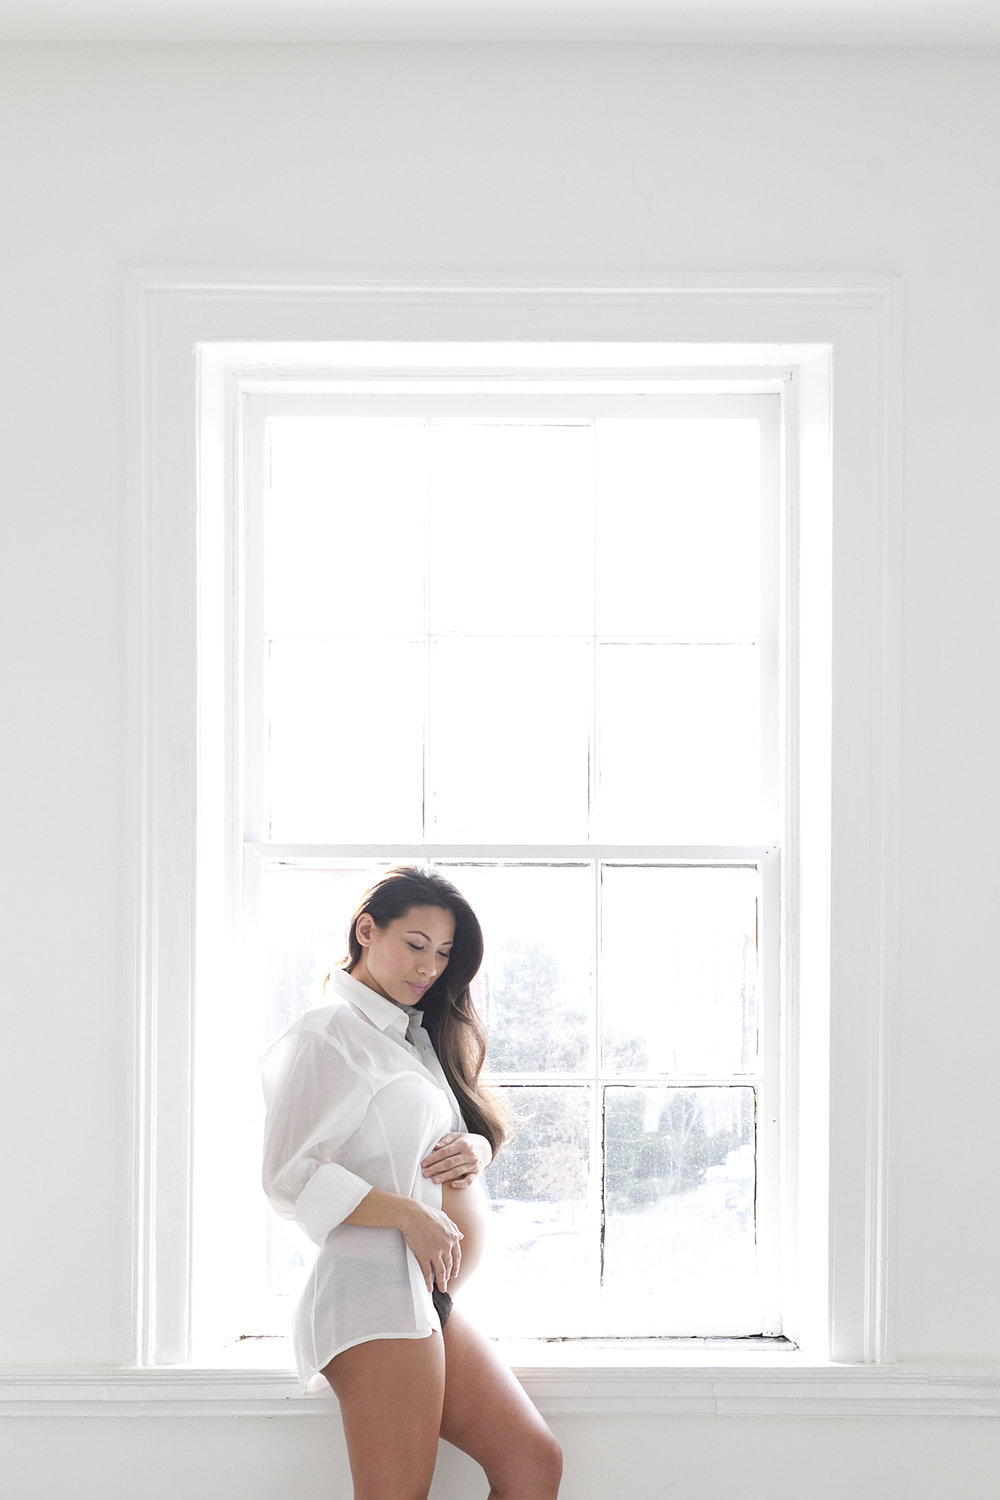 lifestyle-editorial-children-washington-dc-malek-naz-photography-contempo-kids-pregnancy-asian.jpg